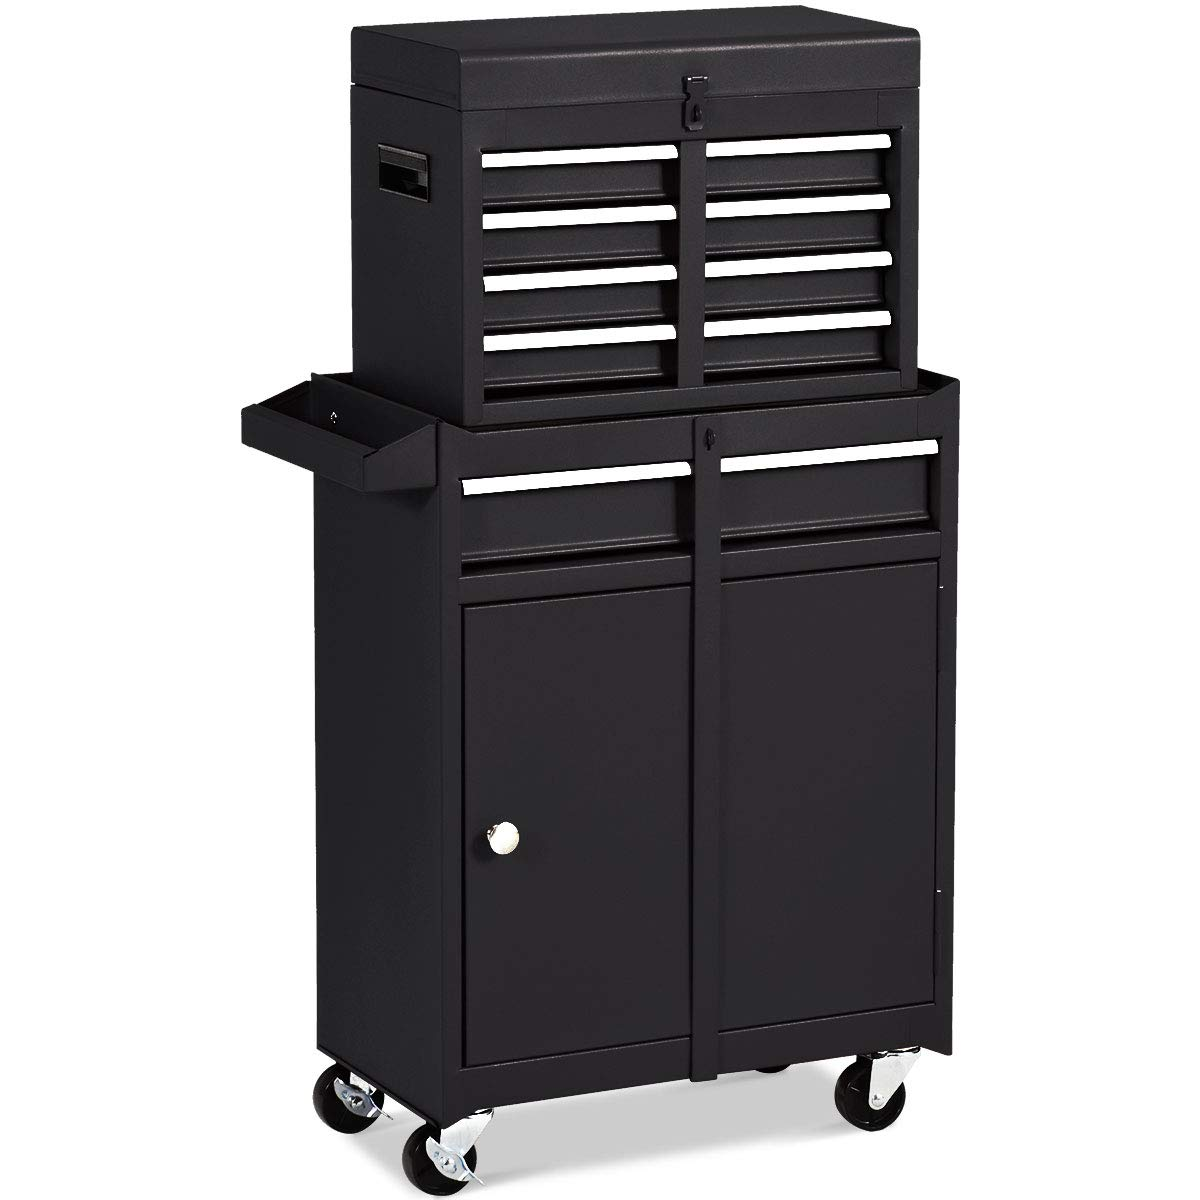 Goplus 5-Drawer Rolling Tool Chest, Tool Storage Box, Removable Tool Cabinet, Sliding Metal Organizer w/Lockable Drawers (Classic Black) by Goplus